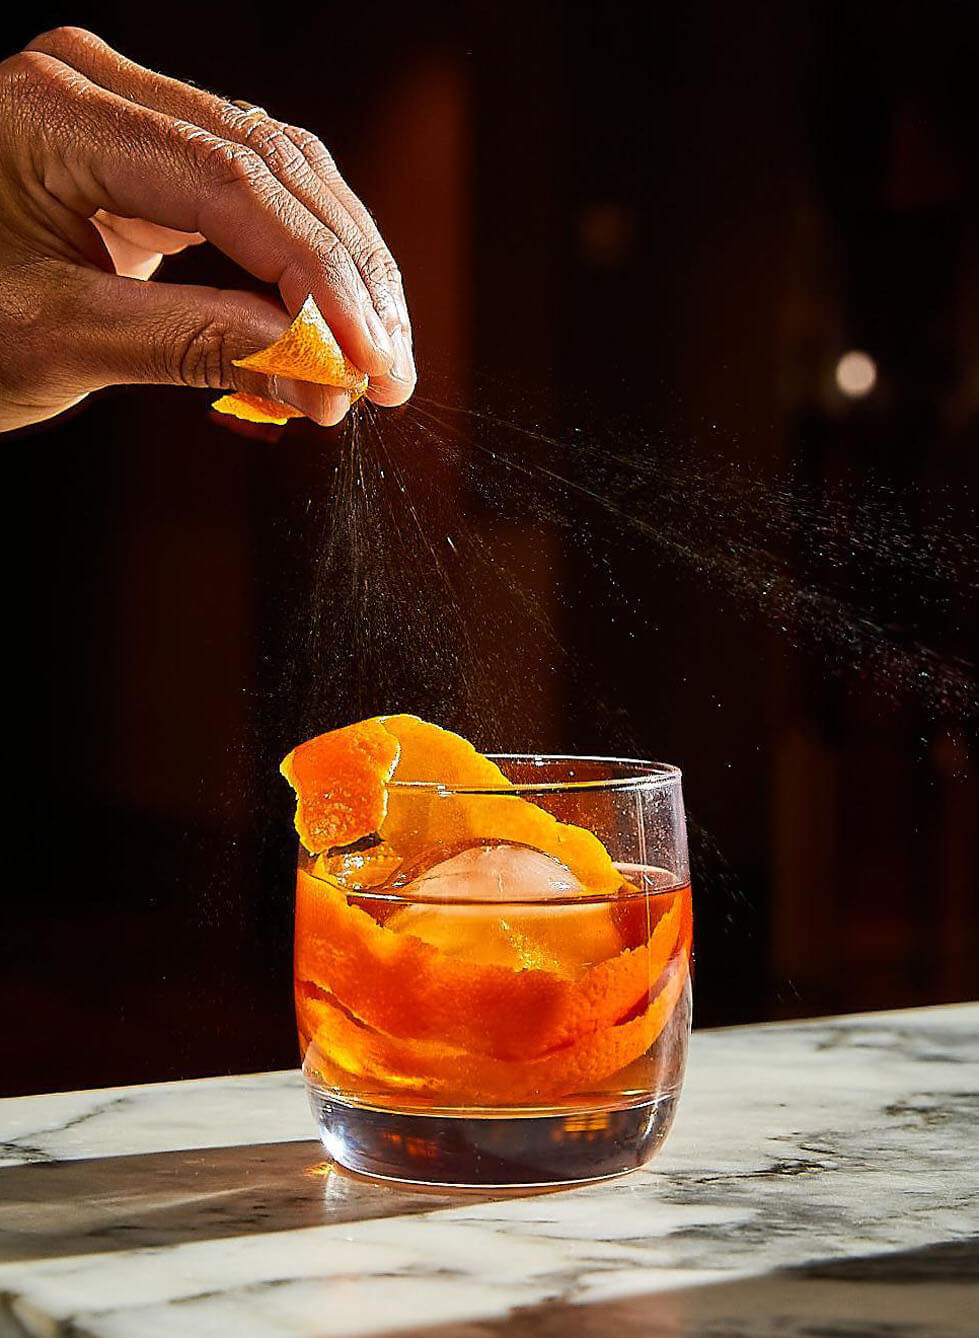 American Bar & Grille - A Bit Old Fashioned